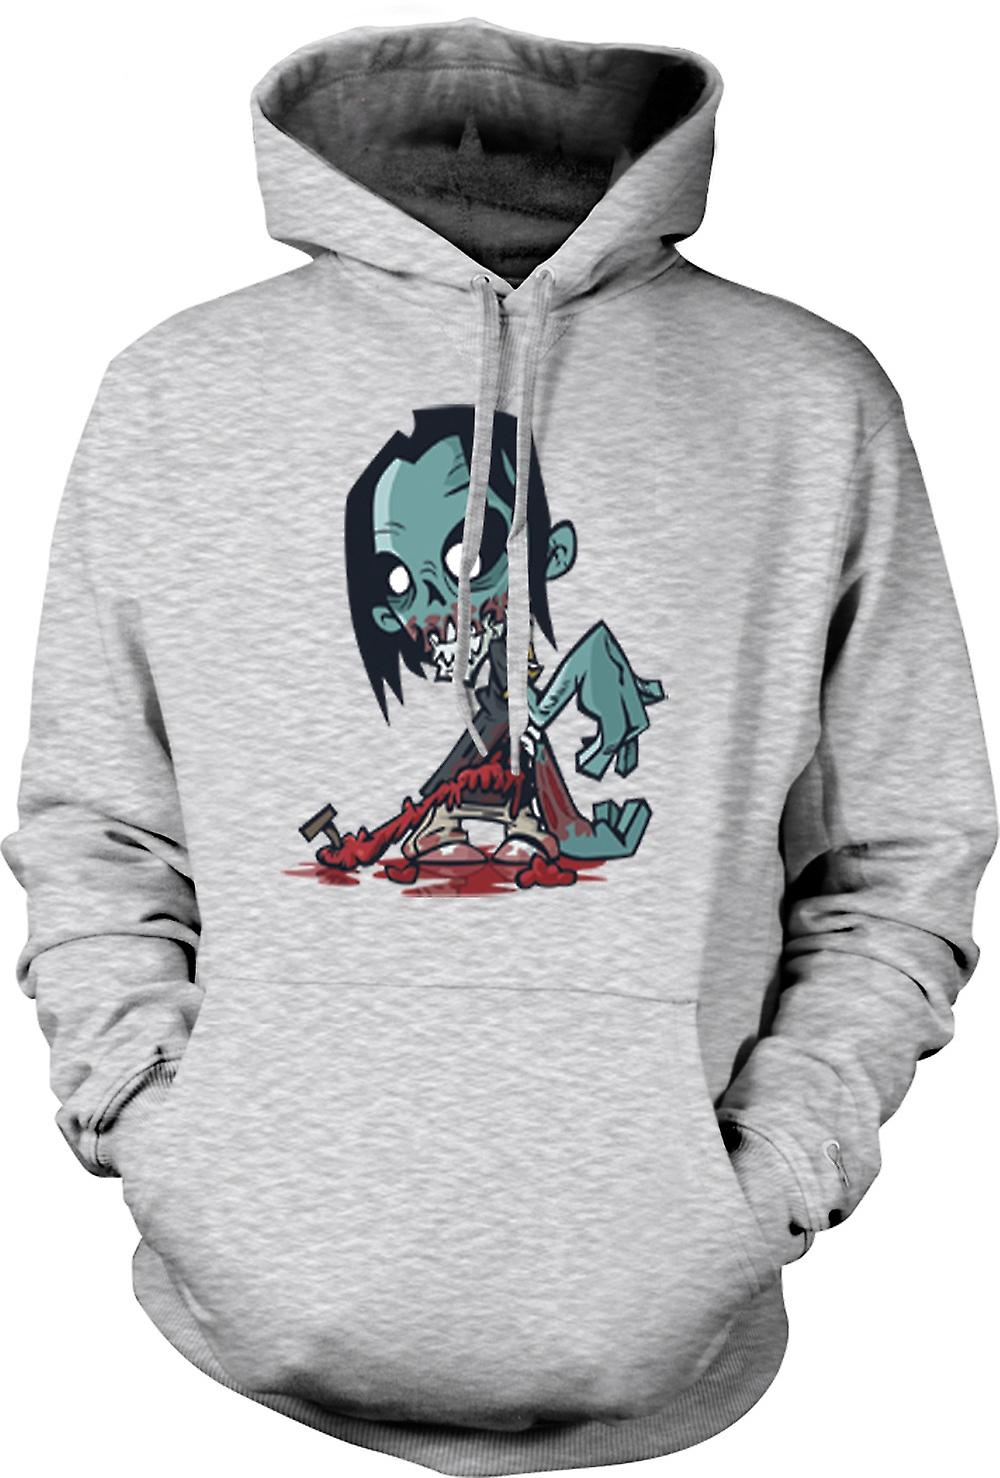 Mens Hoodie - Cartoon Zombie Undead Design